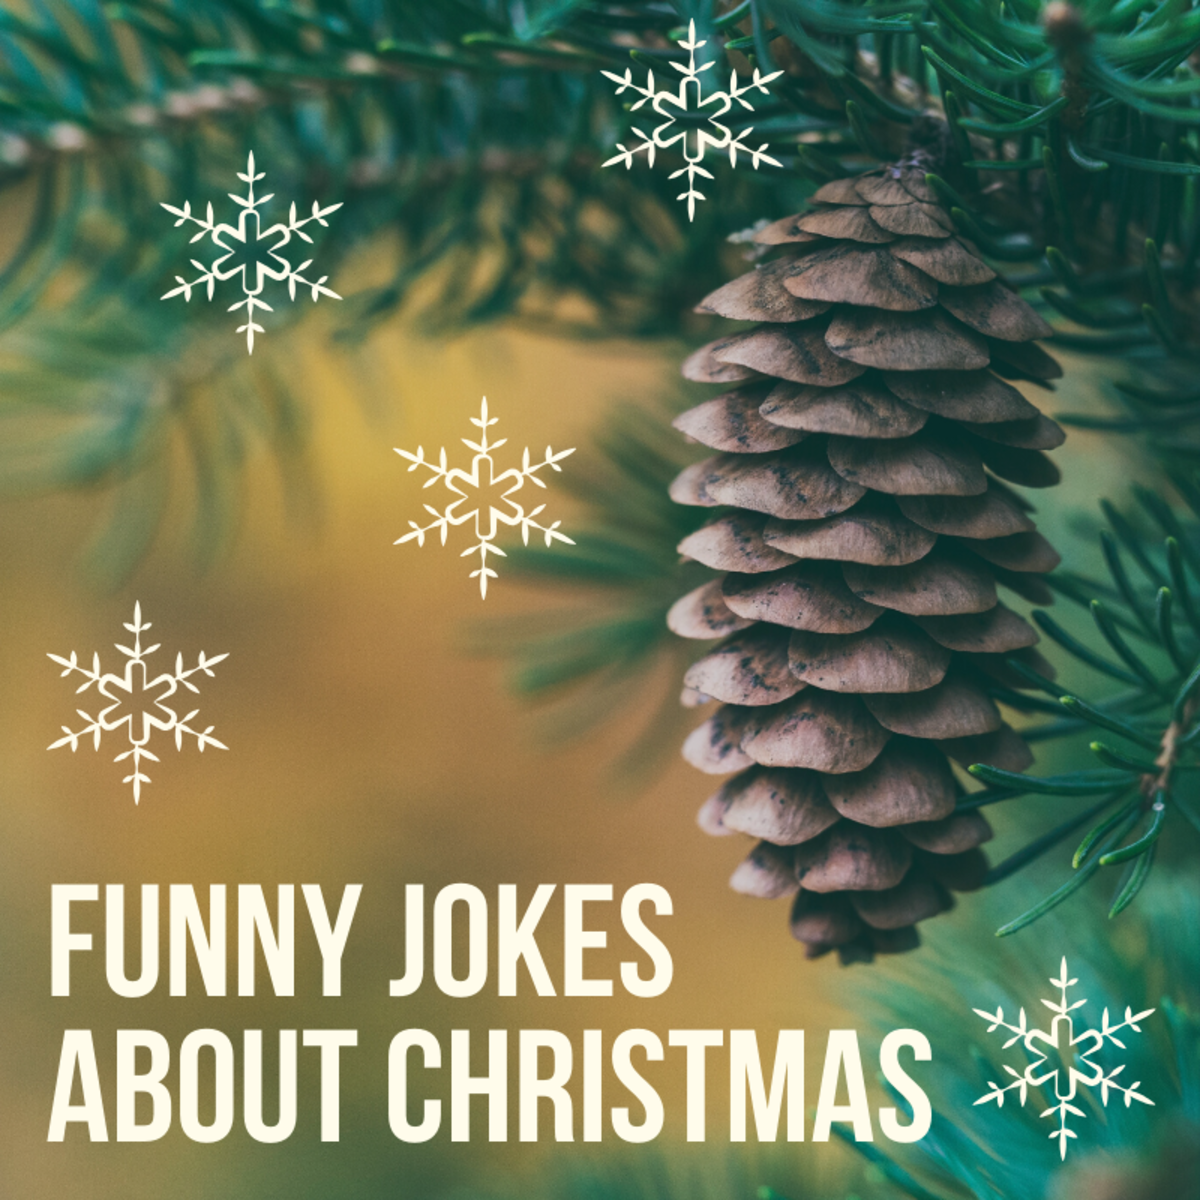 Here's a large collection of Christmas-themed jokes and gags meant to entertain and amuse.